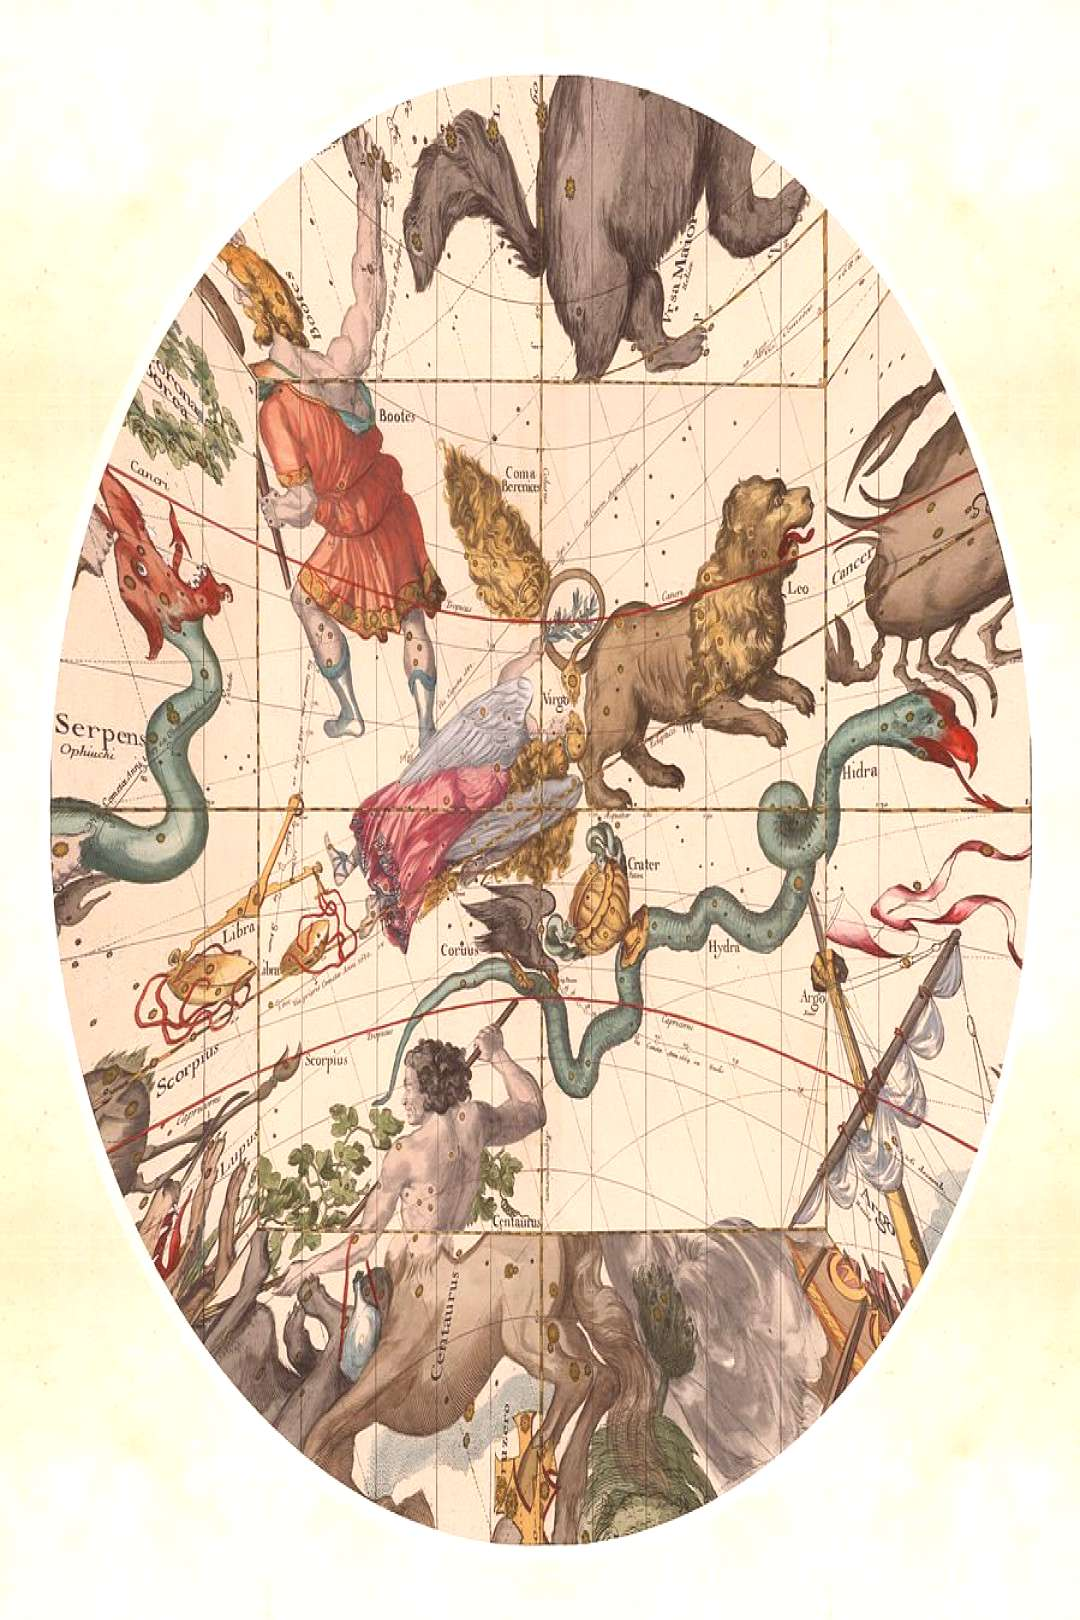 Drawing - Celestial Map - Constellations - Virgo, Hydra, Leo, Libra - Illustrated Map Of The Sky by